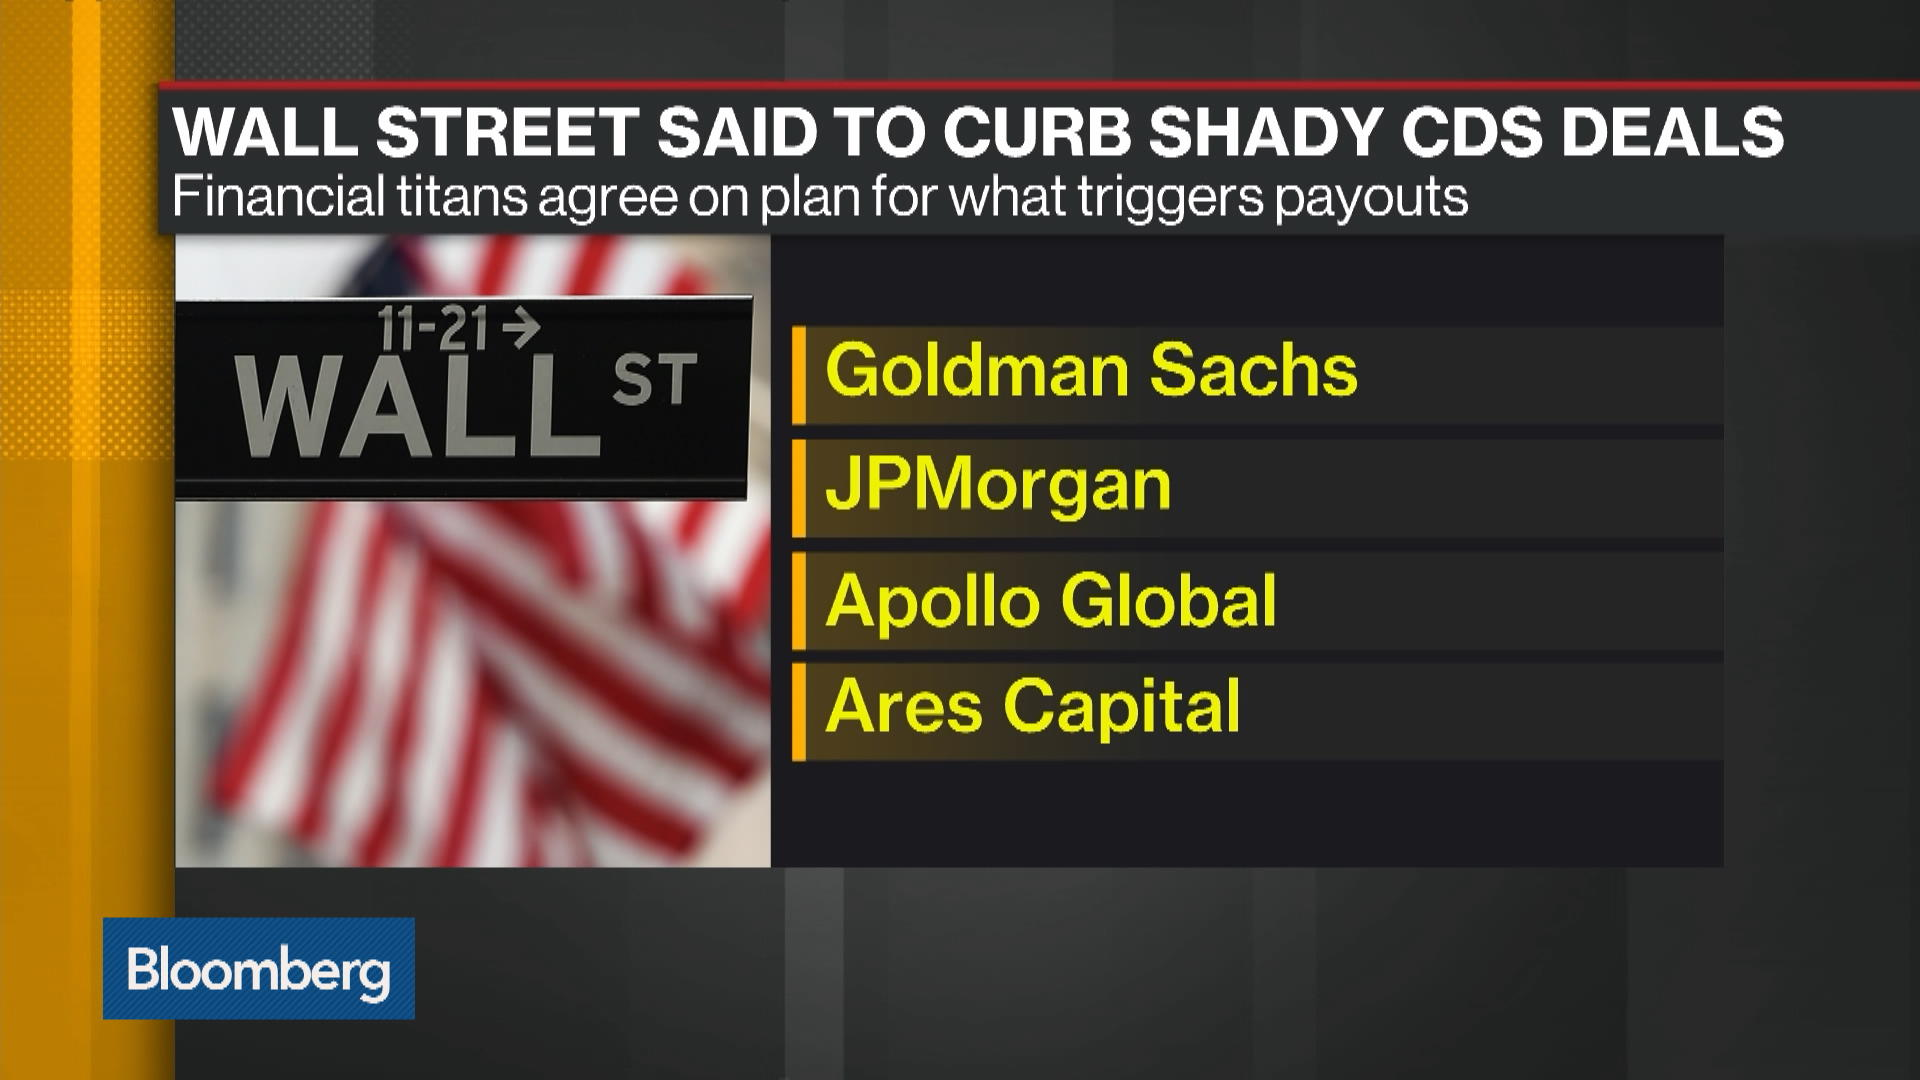 Wall Street Said to Curb Shady CDS Deals